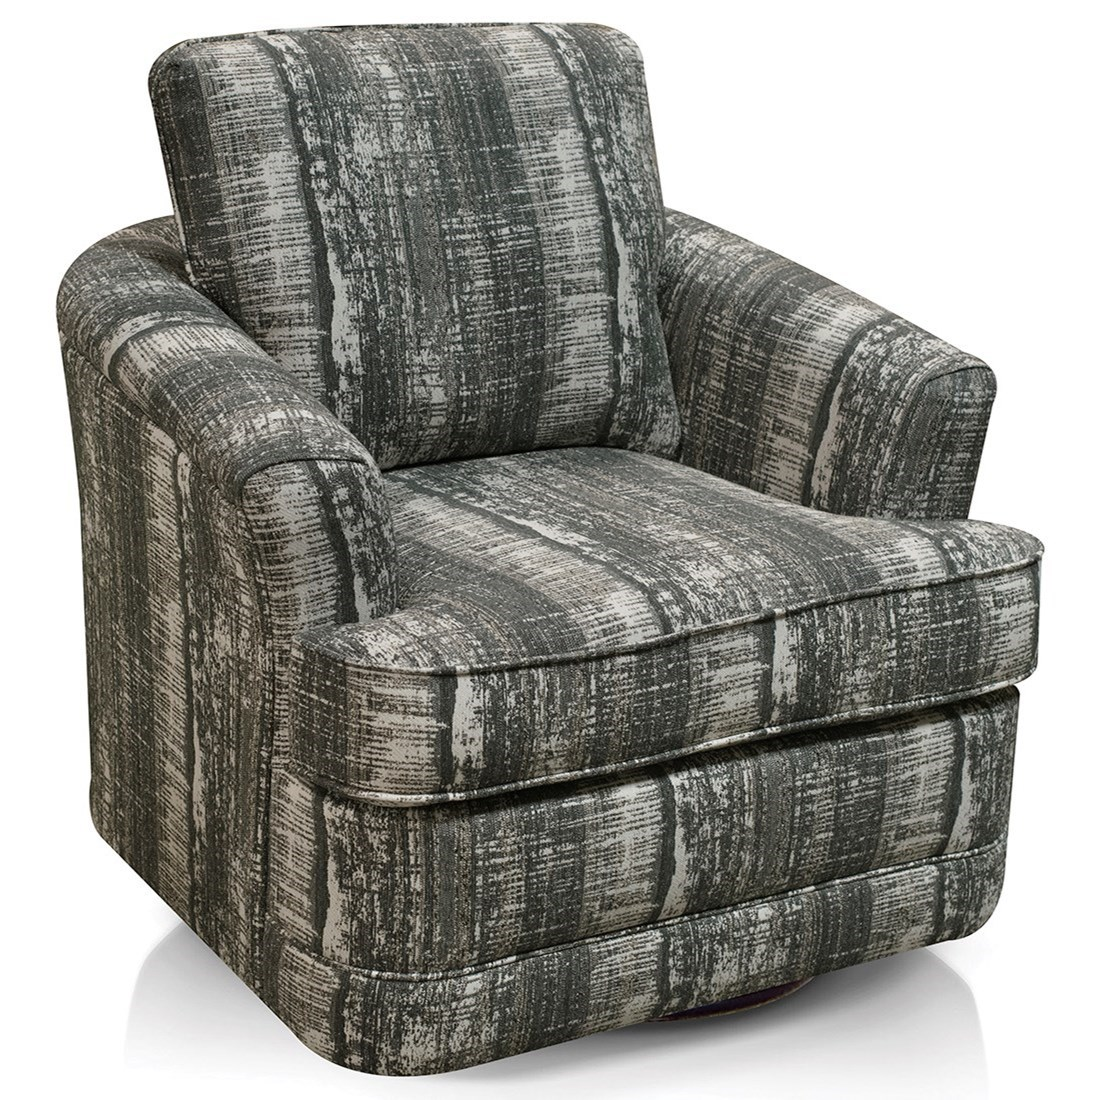 Amos Swivel Chair by England at Van Hill Furniture